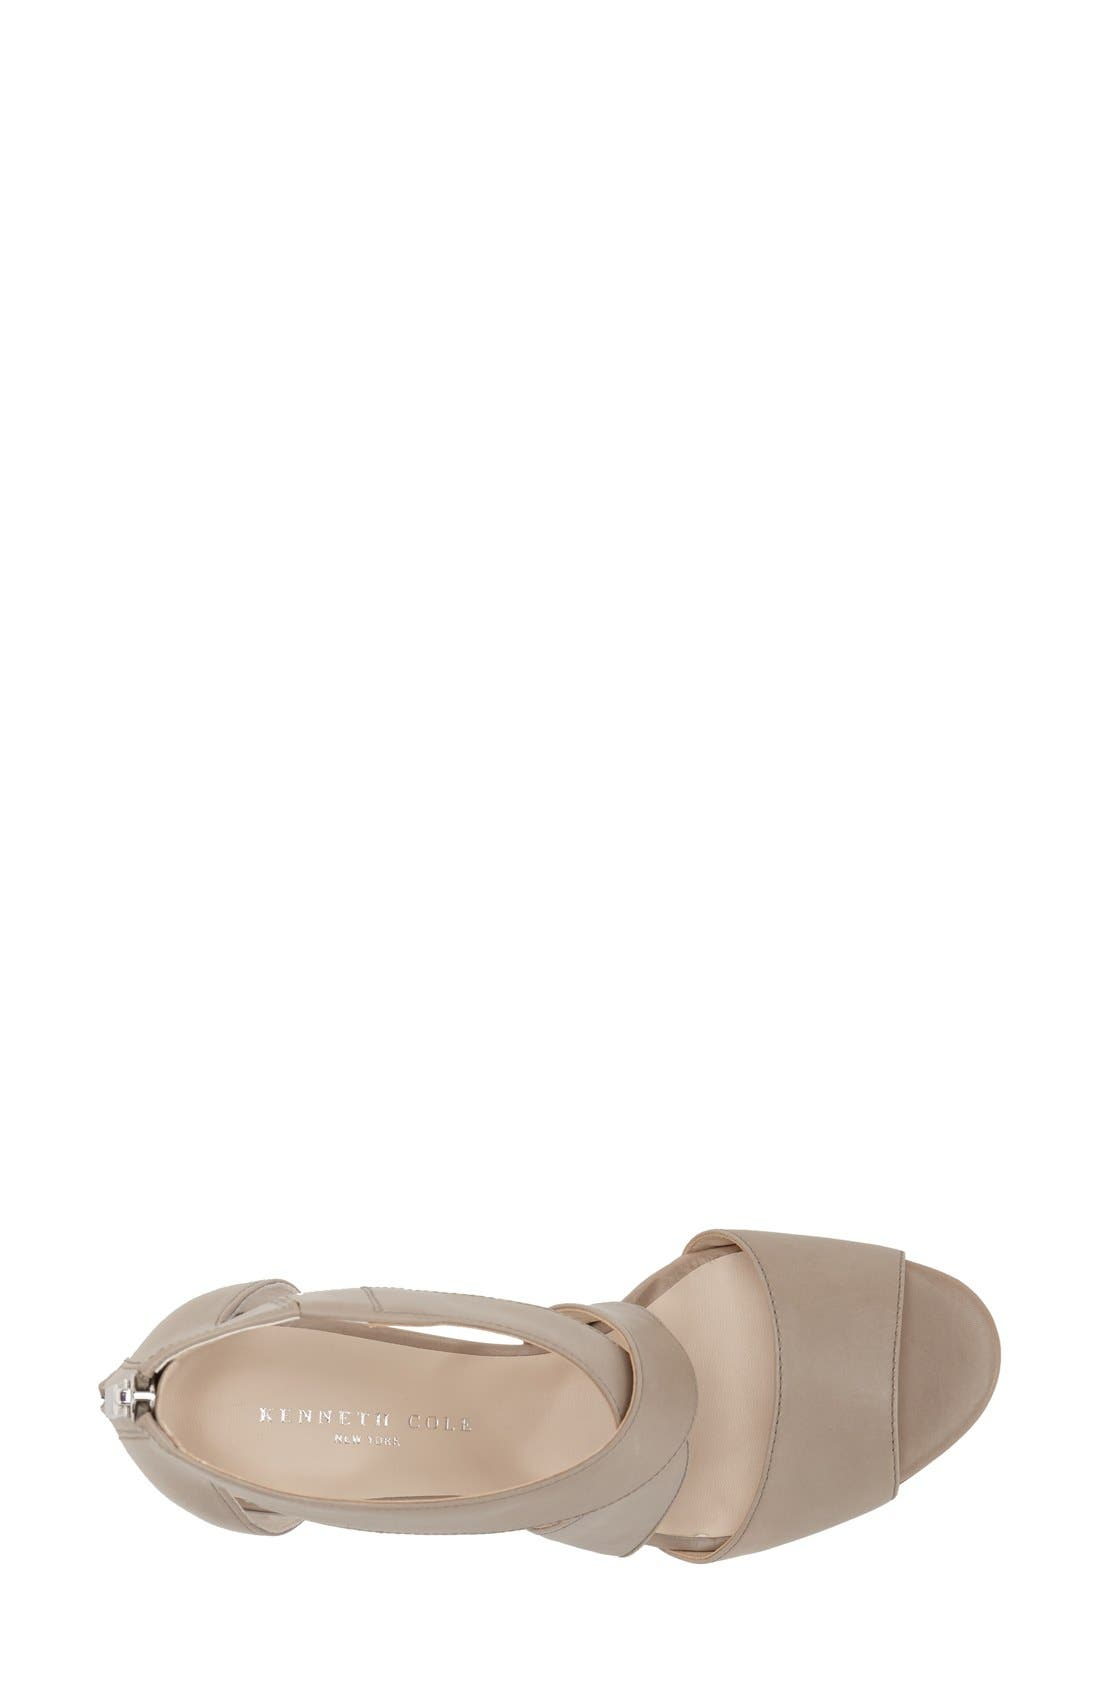 Alternate Image 3  - Kenneth Cole New York 'Drina' Wedge Sandal (Women)